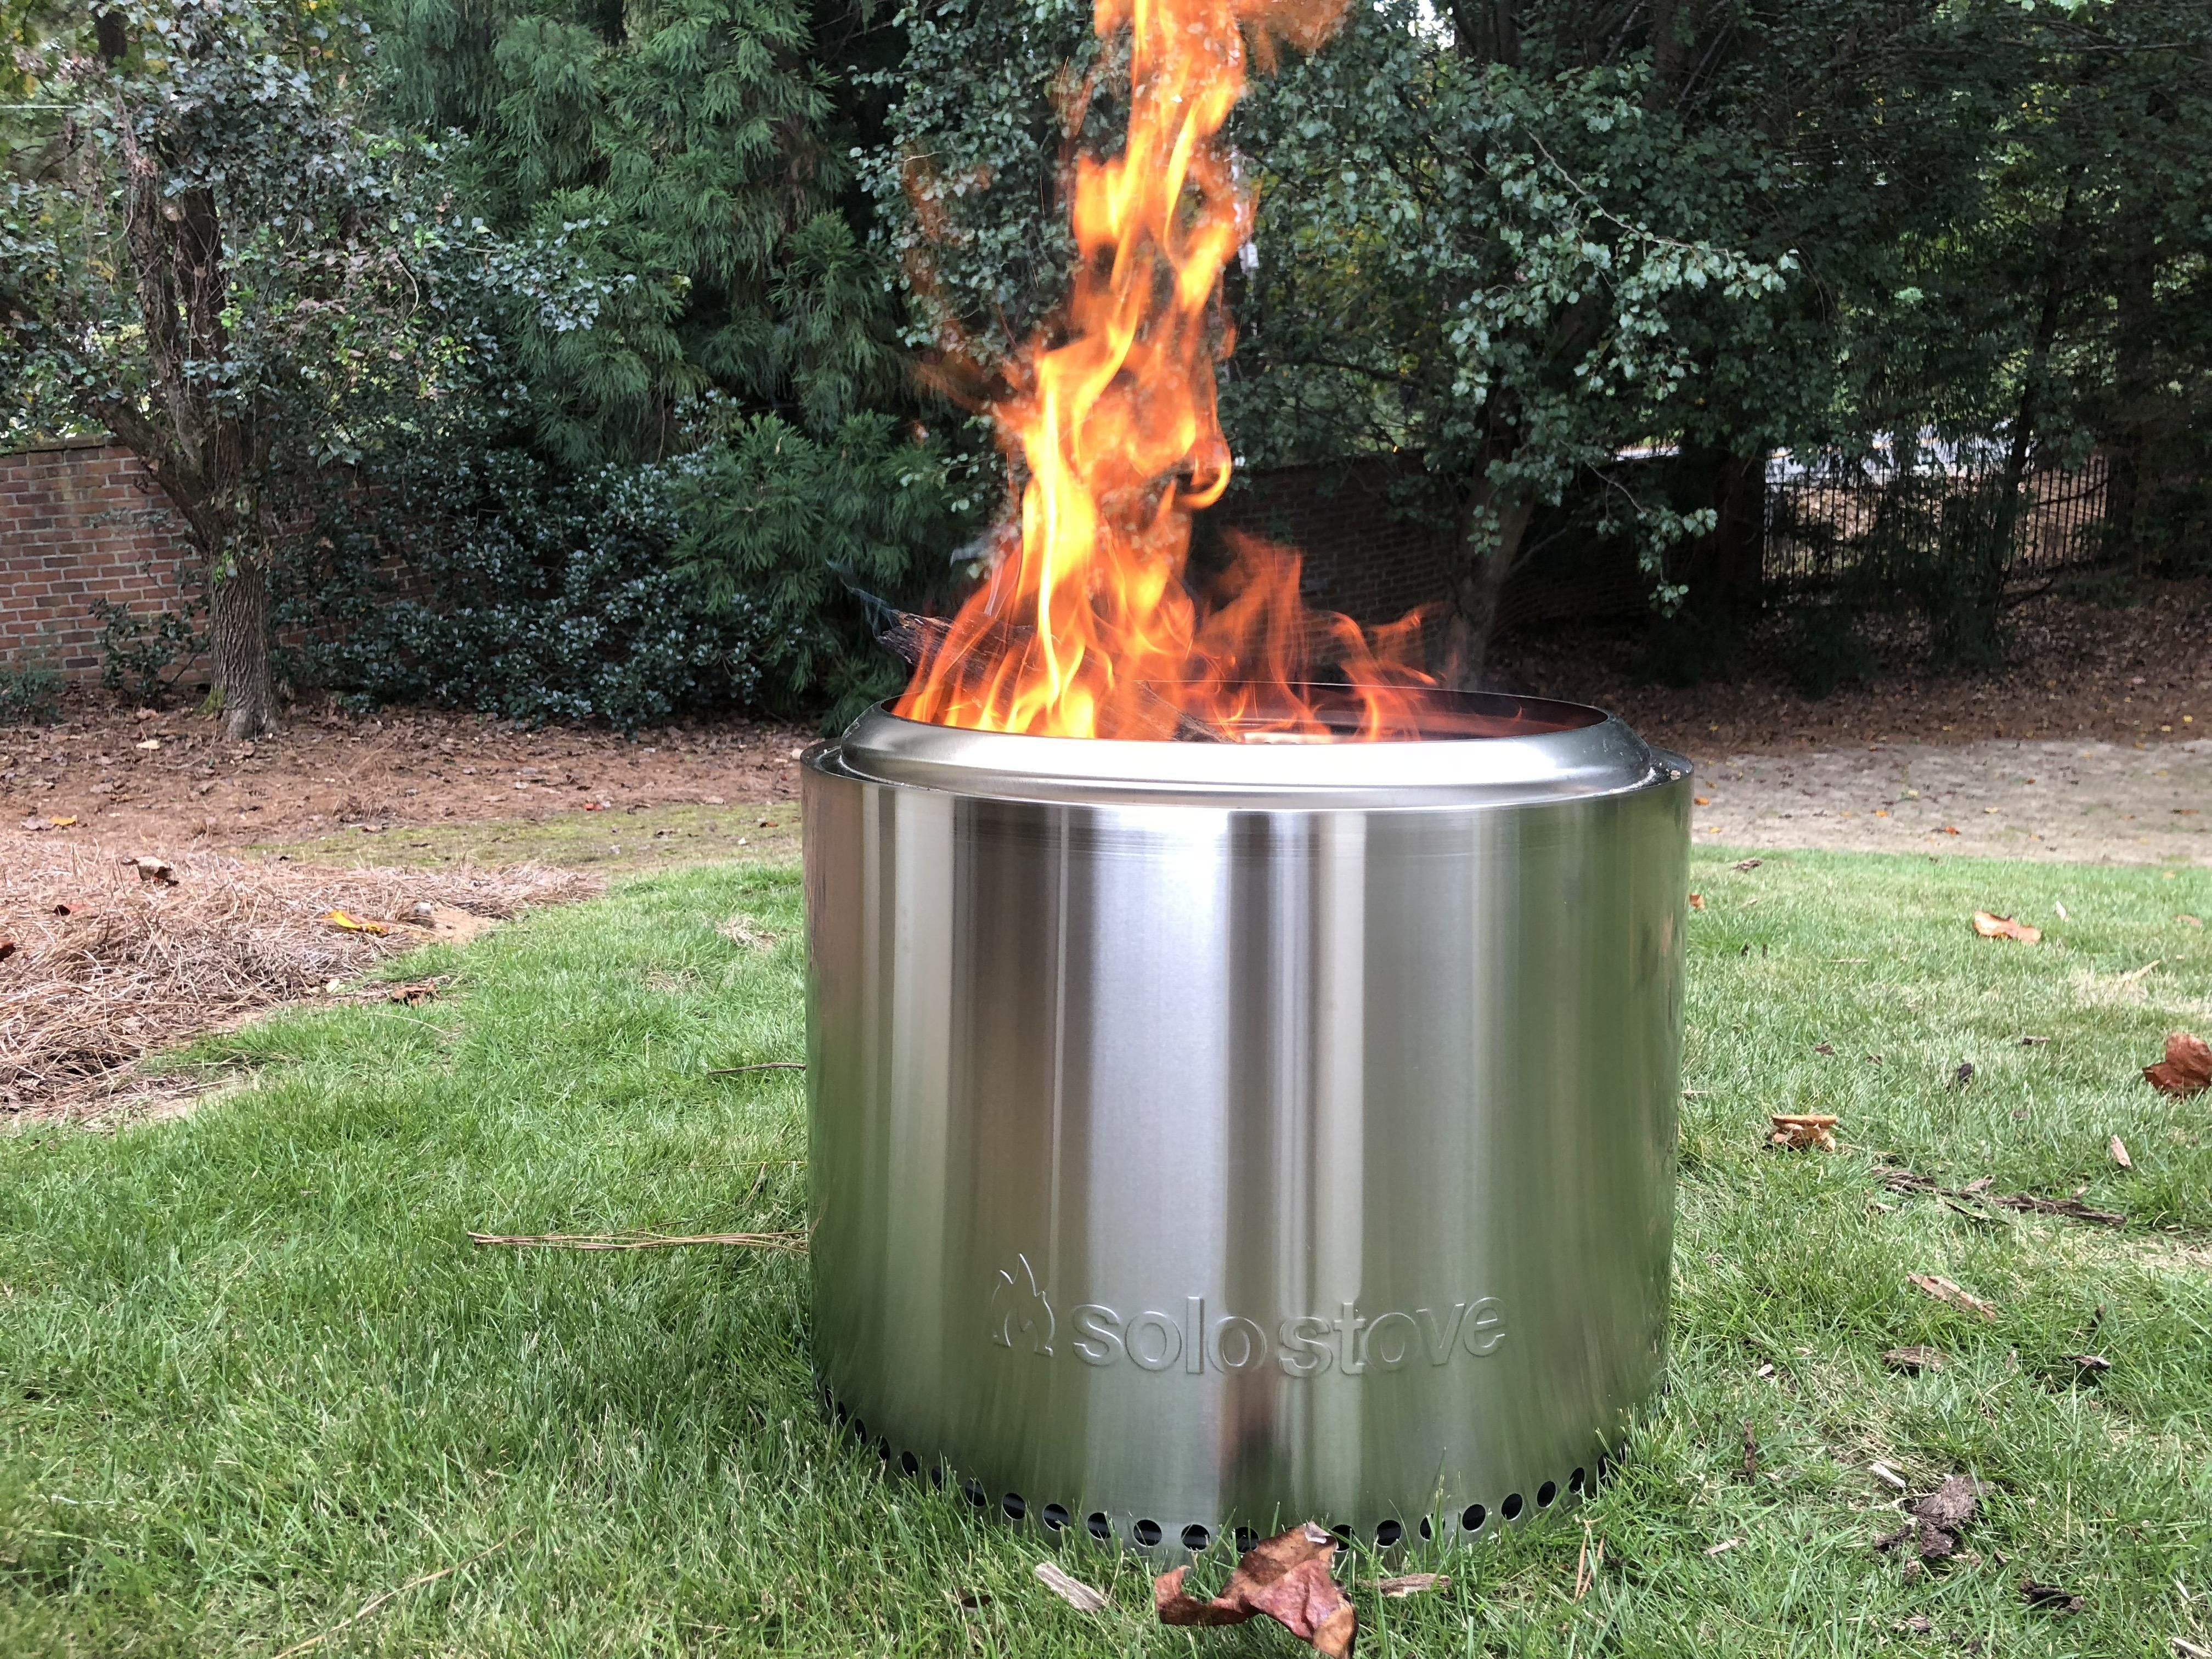 Bought the SoloStove bonfire. I was a little skeptical to